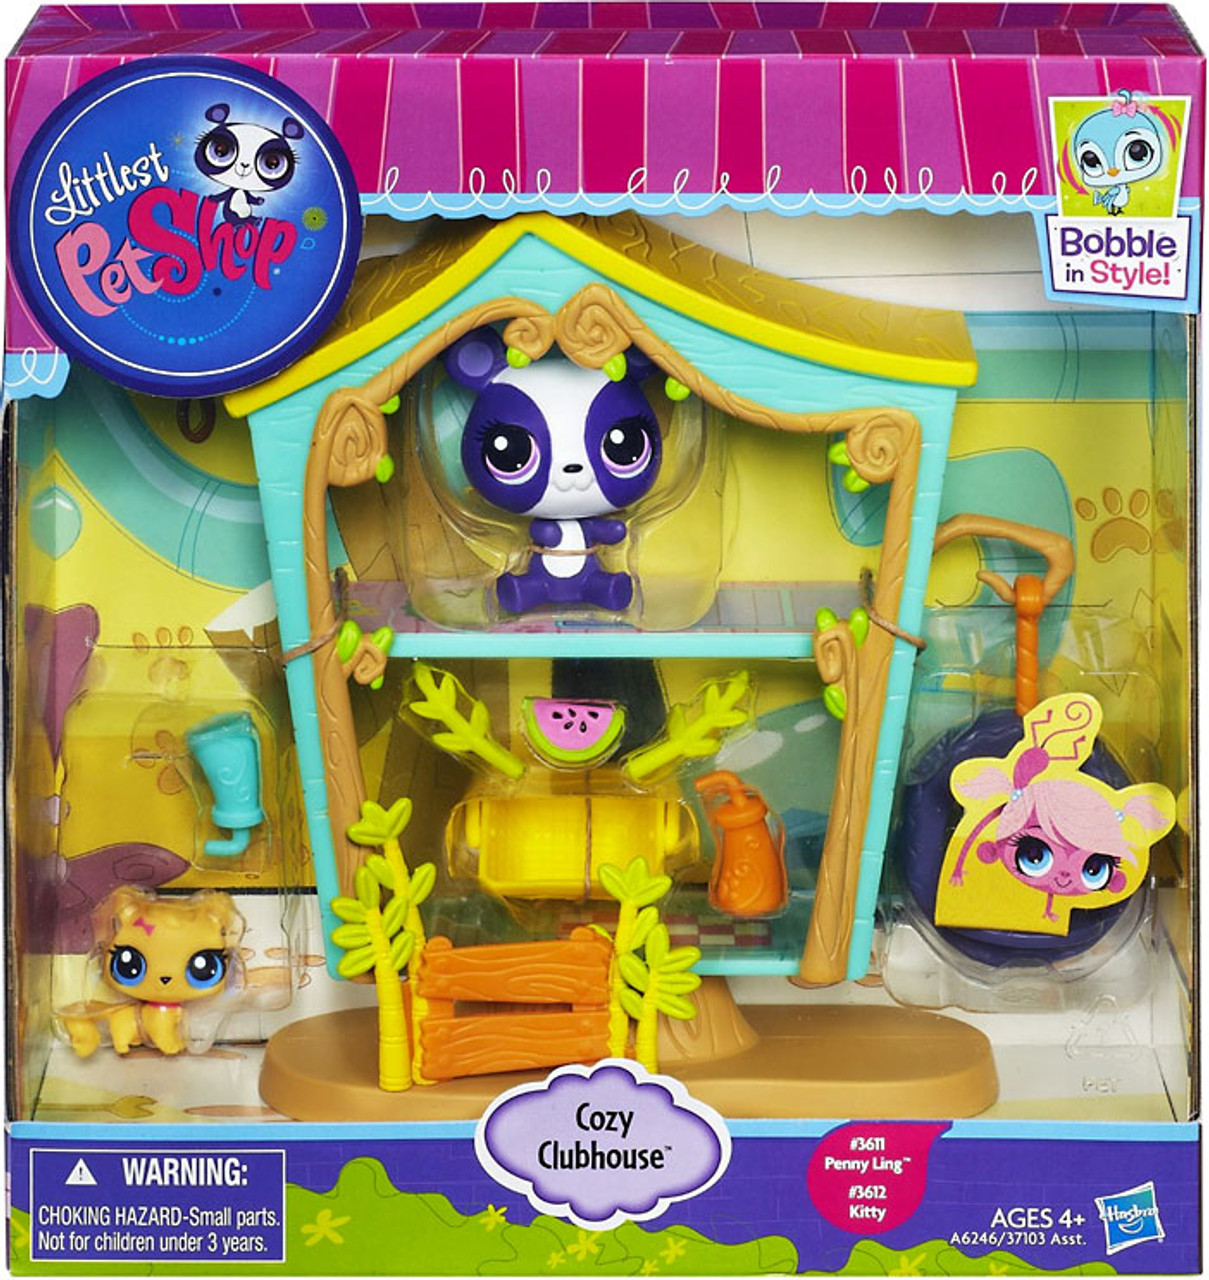 Littlest Pet Shop Bobble In Style Cozy Clubhouse Figure Set #3611, 3612